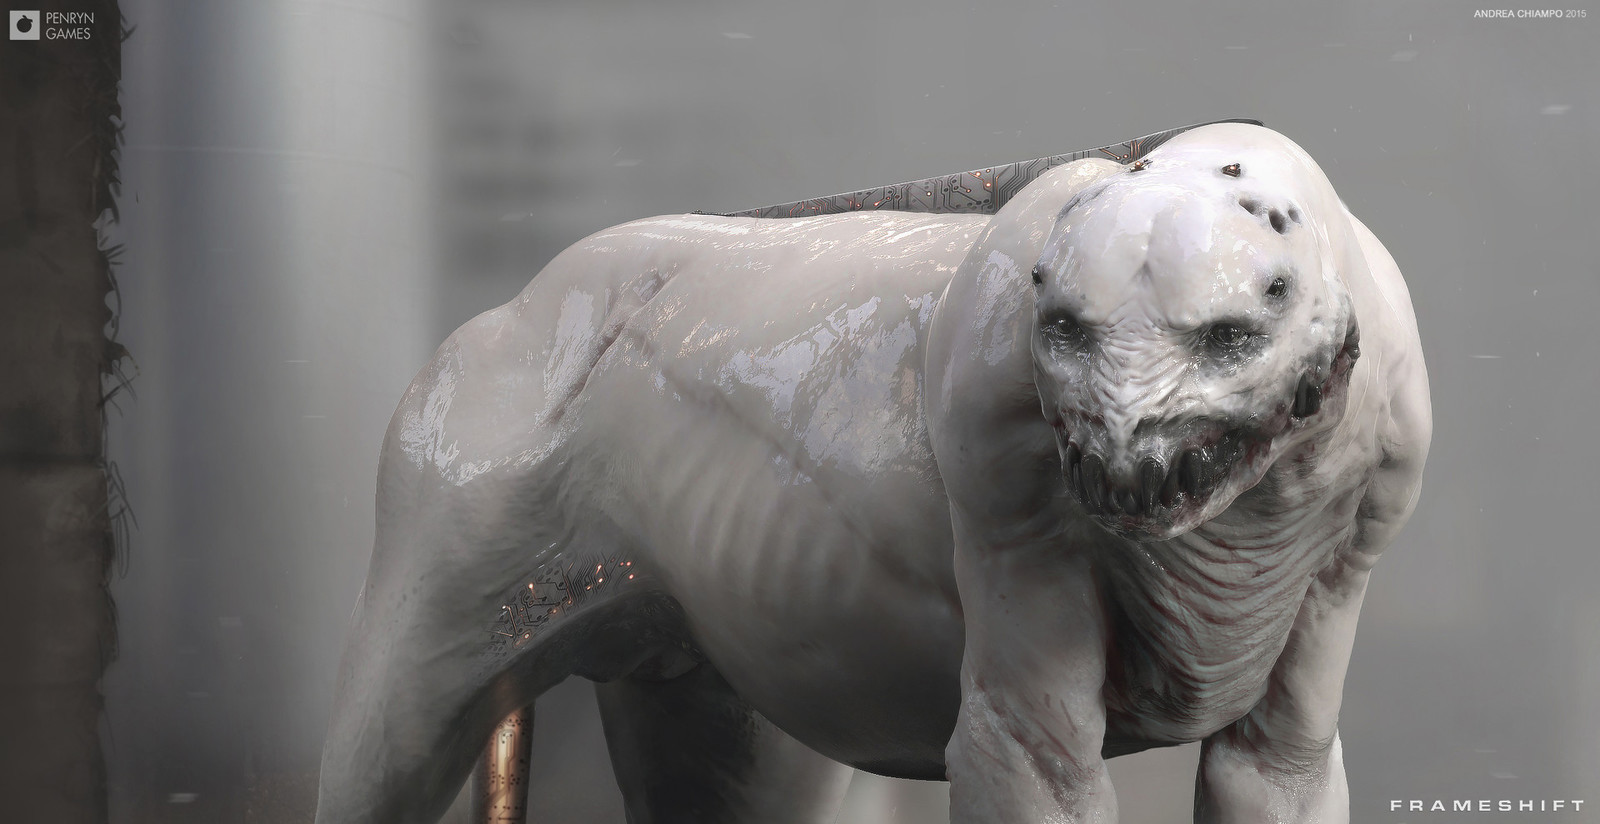 Mutants are genetically engineered and cybernetically augmented to be powerful predators, specifically designed to kill or maim their human prey.